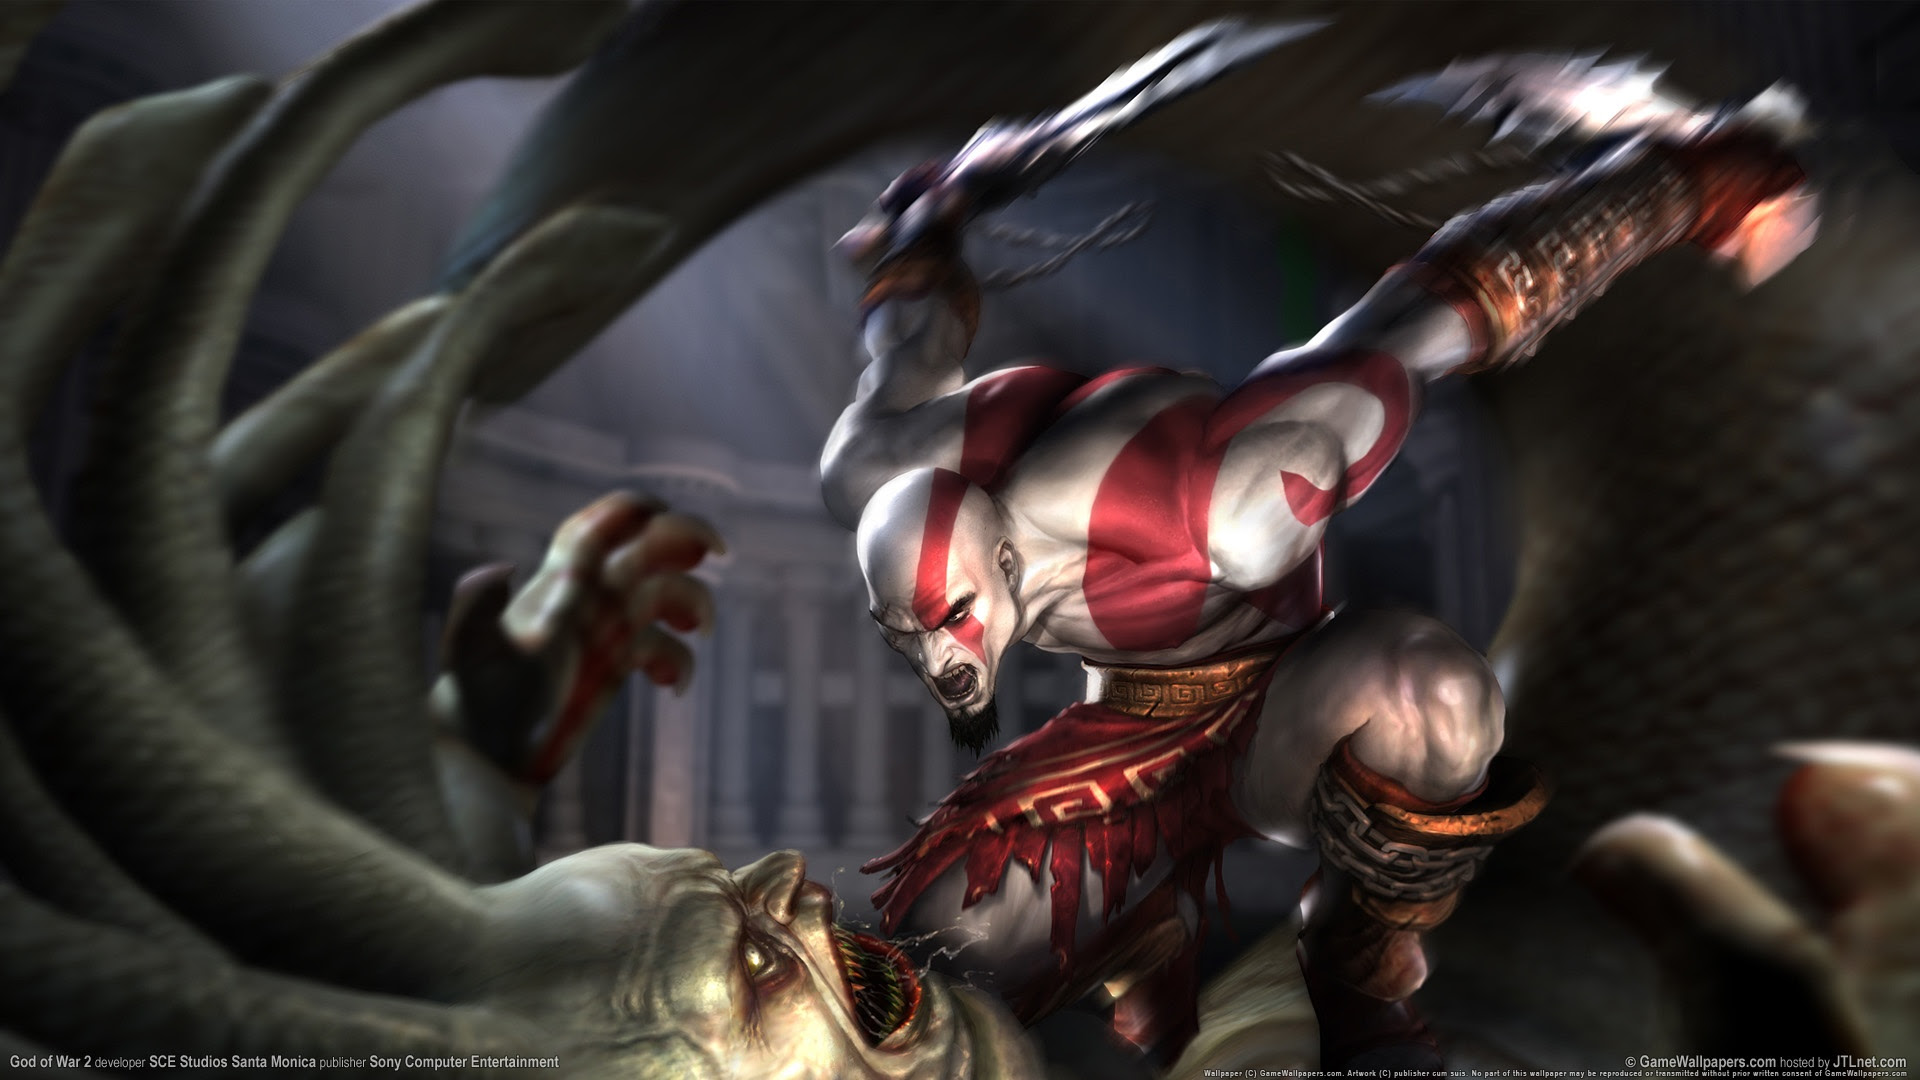 God Of War 2 1080p Wallpapers In Jpg Format For Free Download